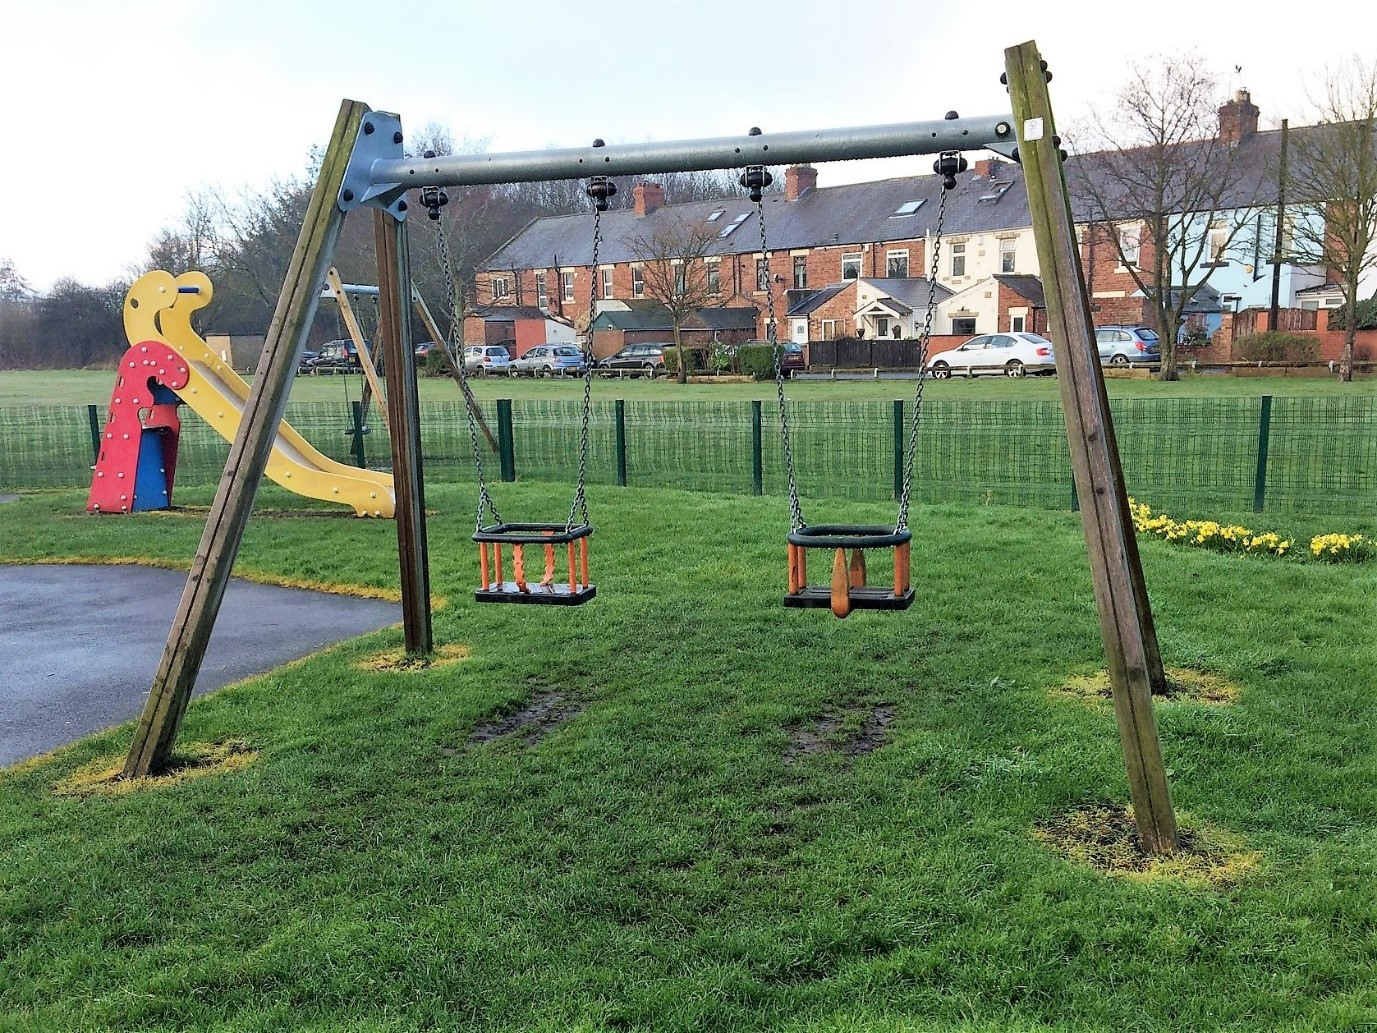 Glyphosate sprayed in our parks and playgrounds